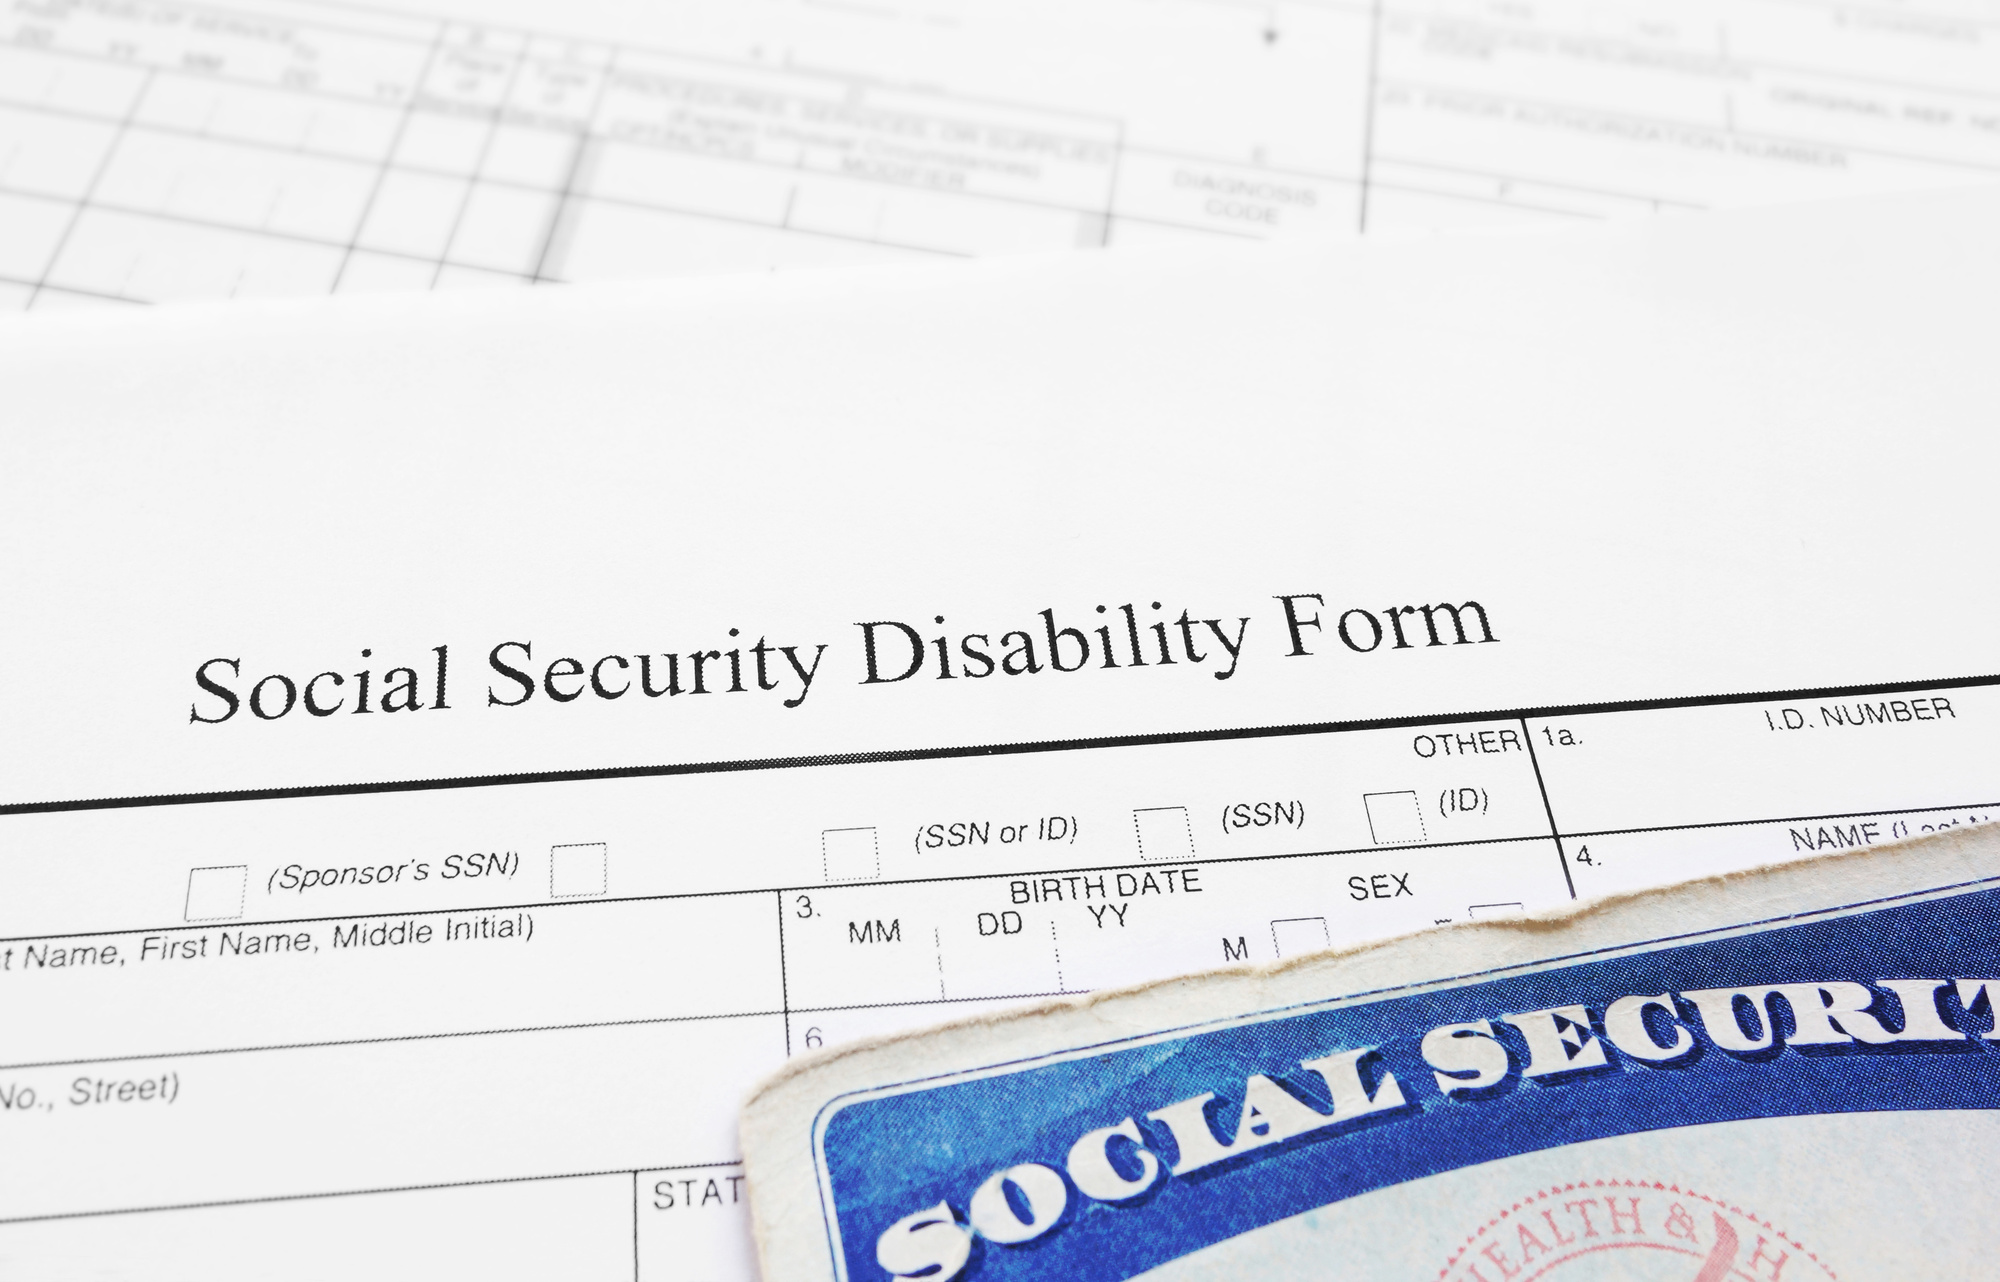 SS Disability Facts: What Qualifies Someone for Social Security Disability Benefits?